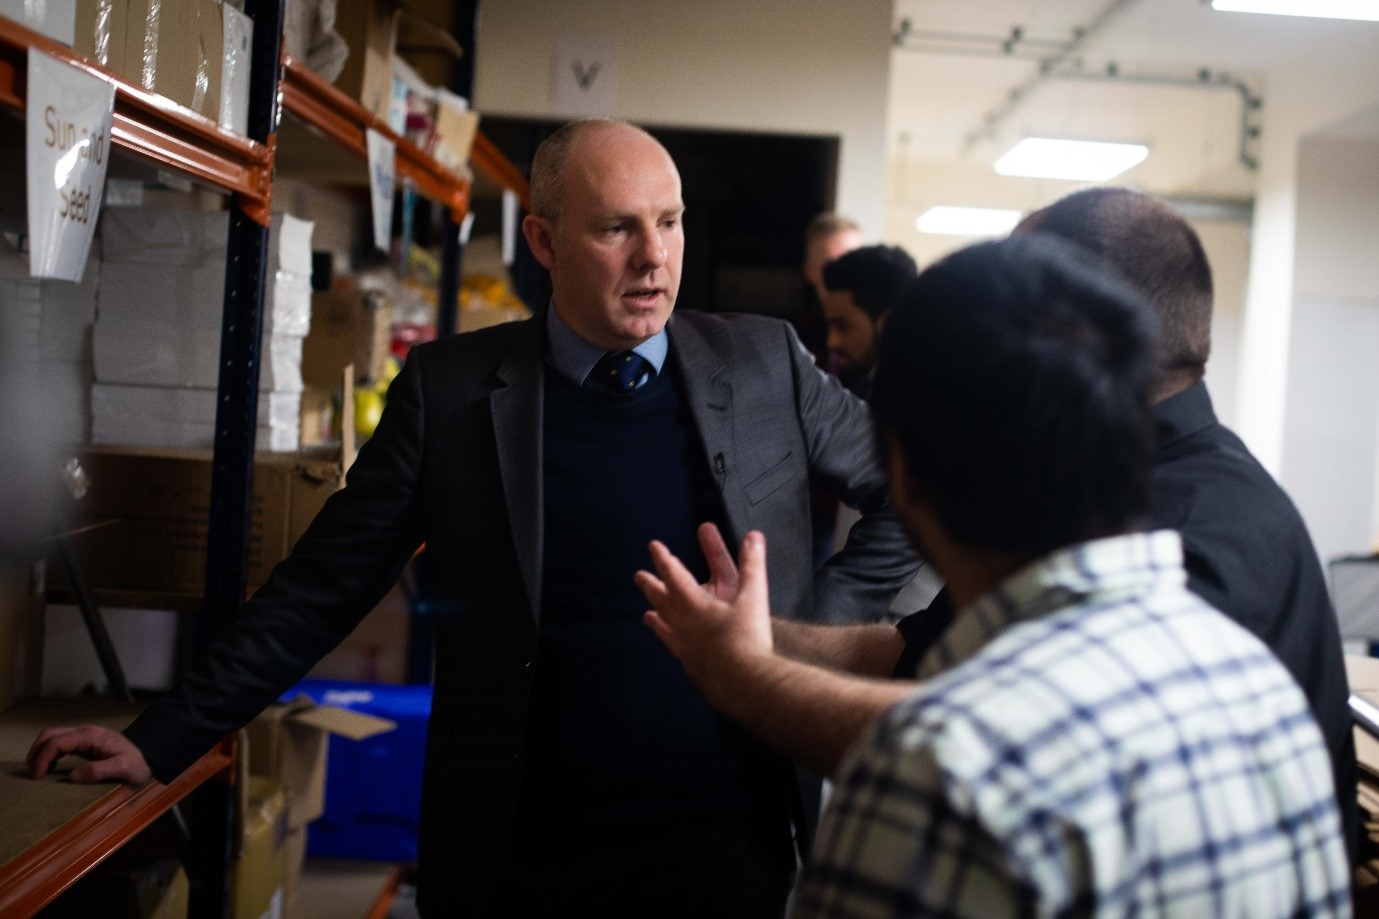 Government minister Justin Tomlinson in a warehouse, with one hand on hips and another on an orange shelf. He is speaking to 2 people with their backs to you.